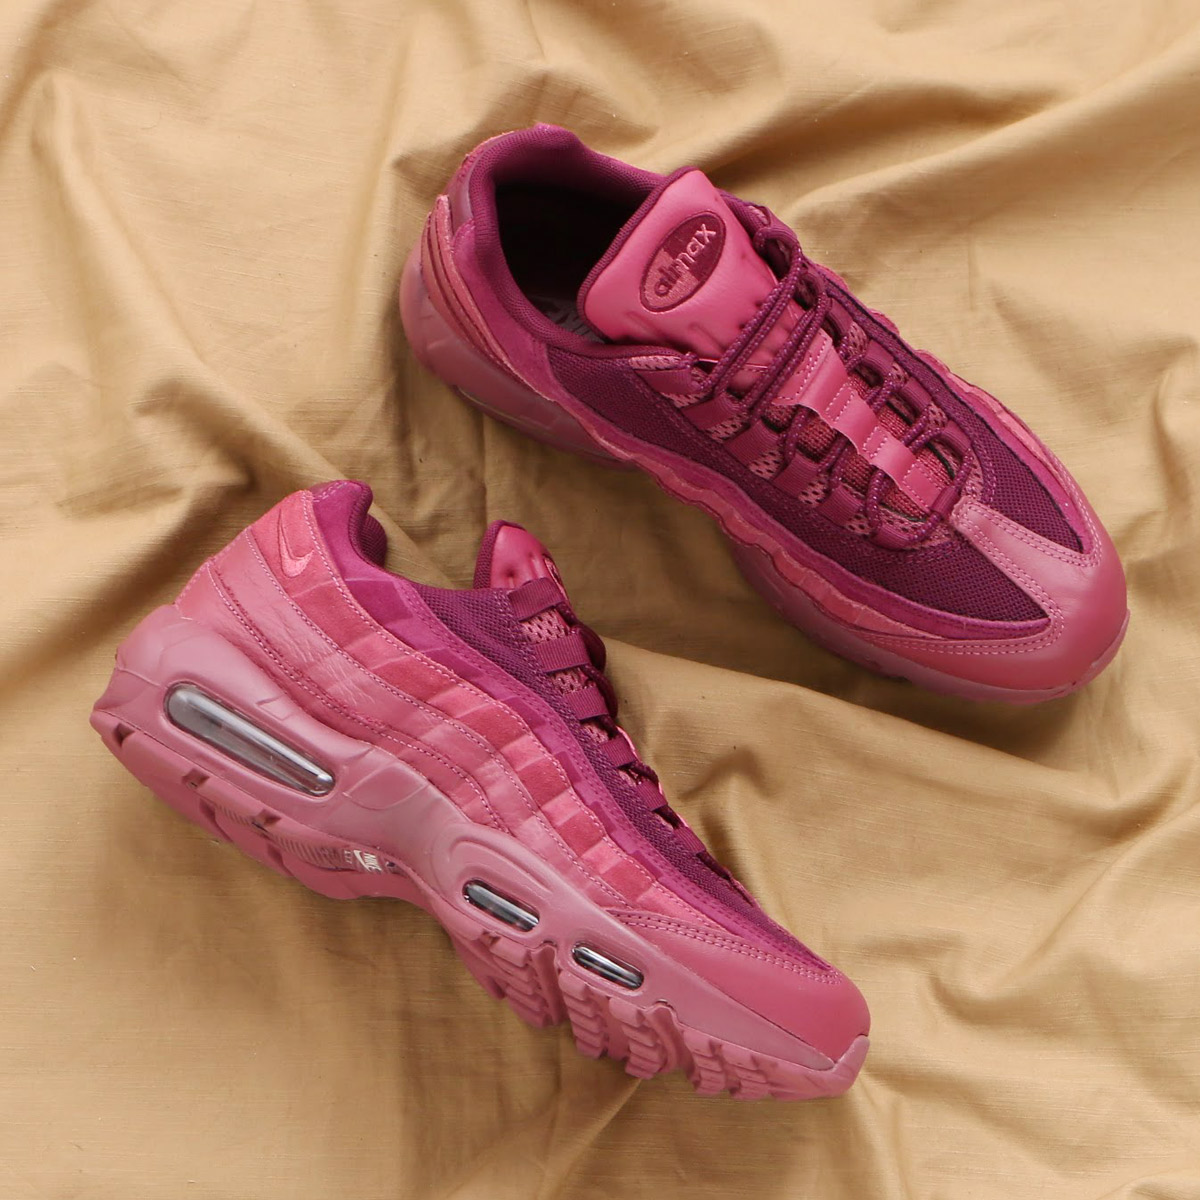 a45e6fb80618 maximum point 10 times that is targeted for all articles! NIKE AIR MAX 95  PRM (Kie Ney AMAX 95 premium) (VINTAGE WINE VINTAGE WINE-BORDEAUX) 18SP-S